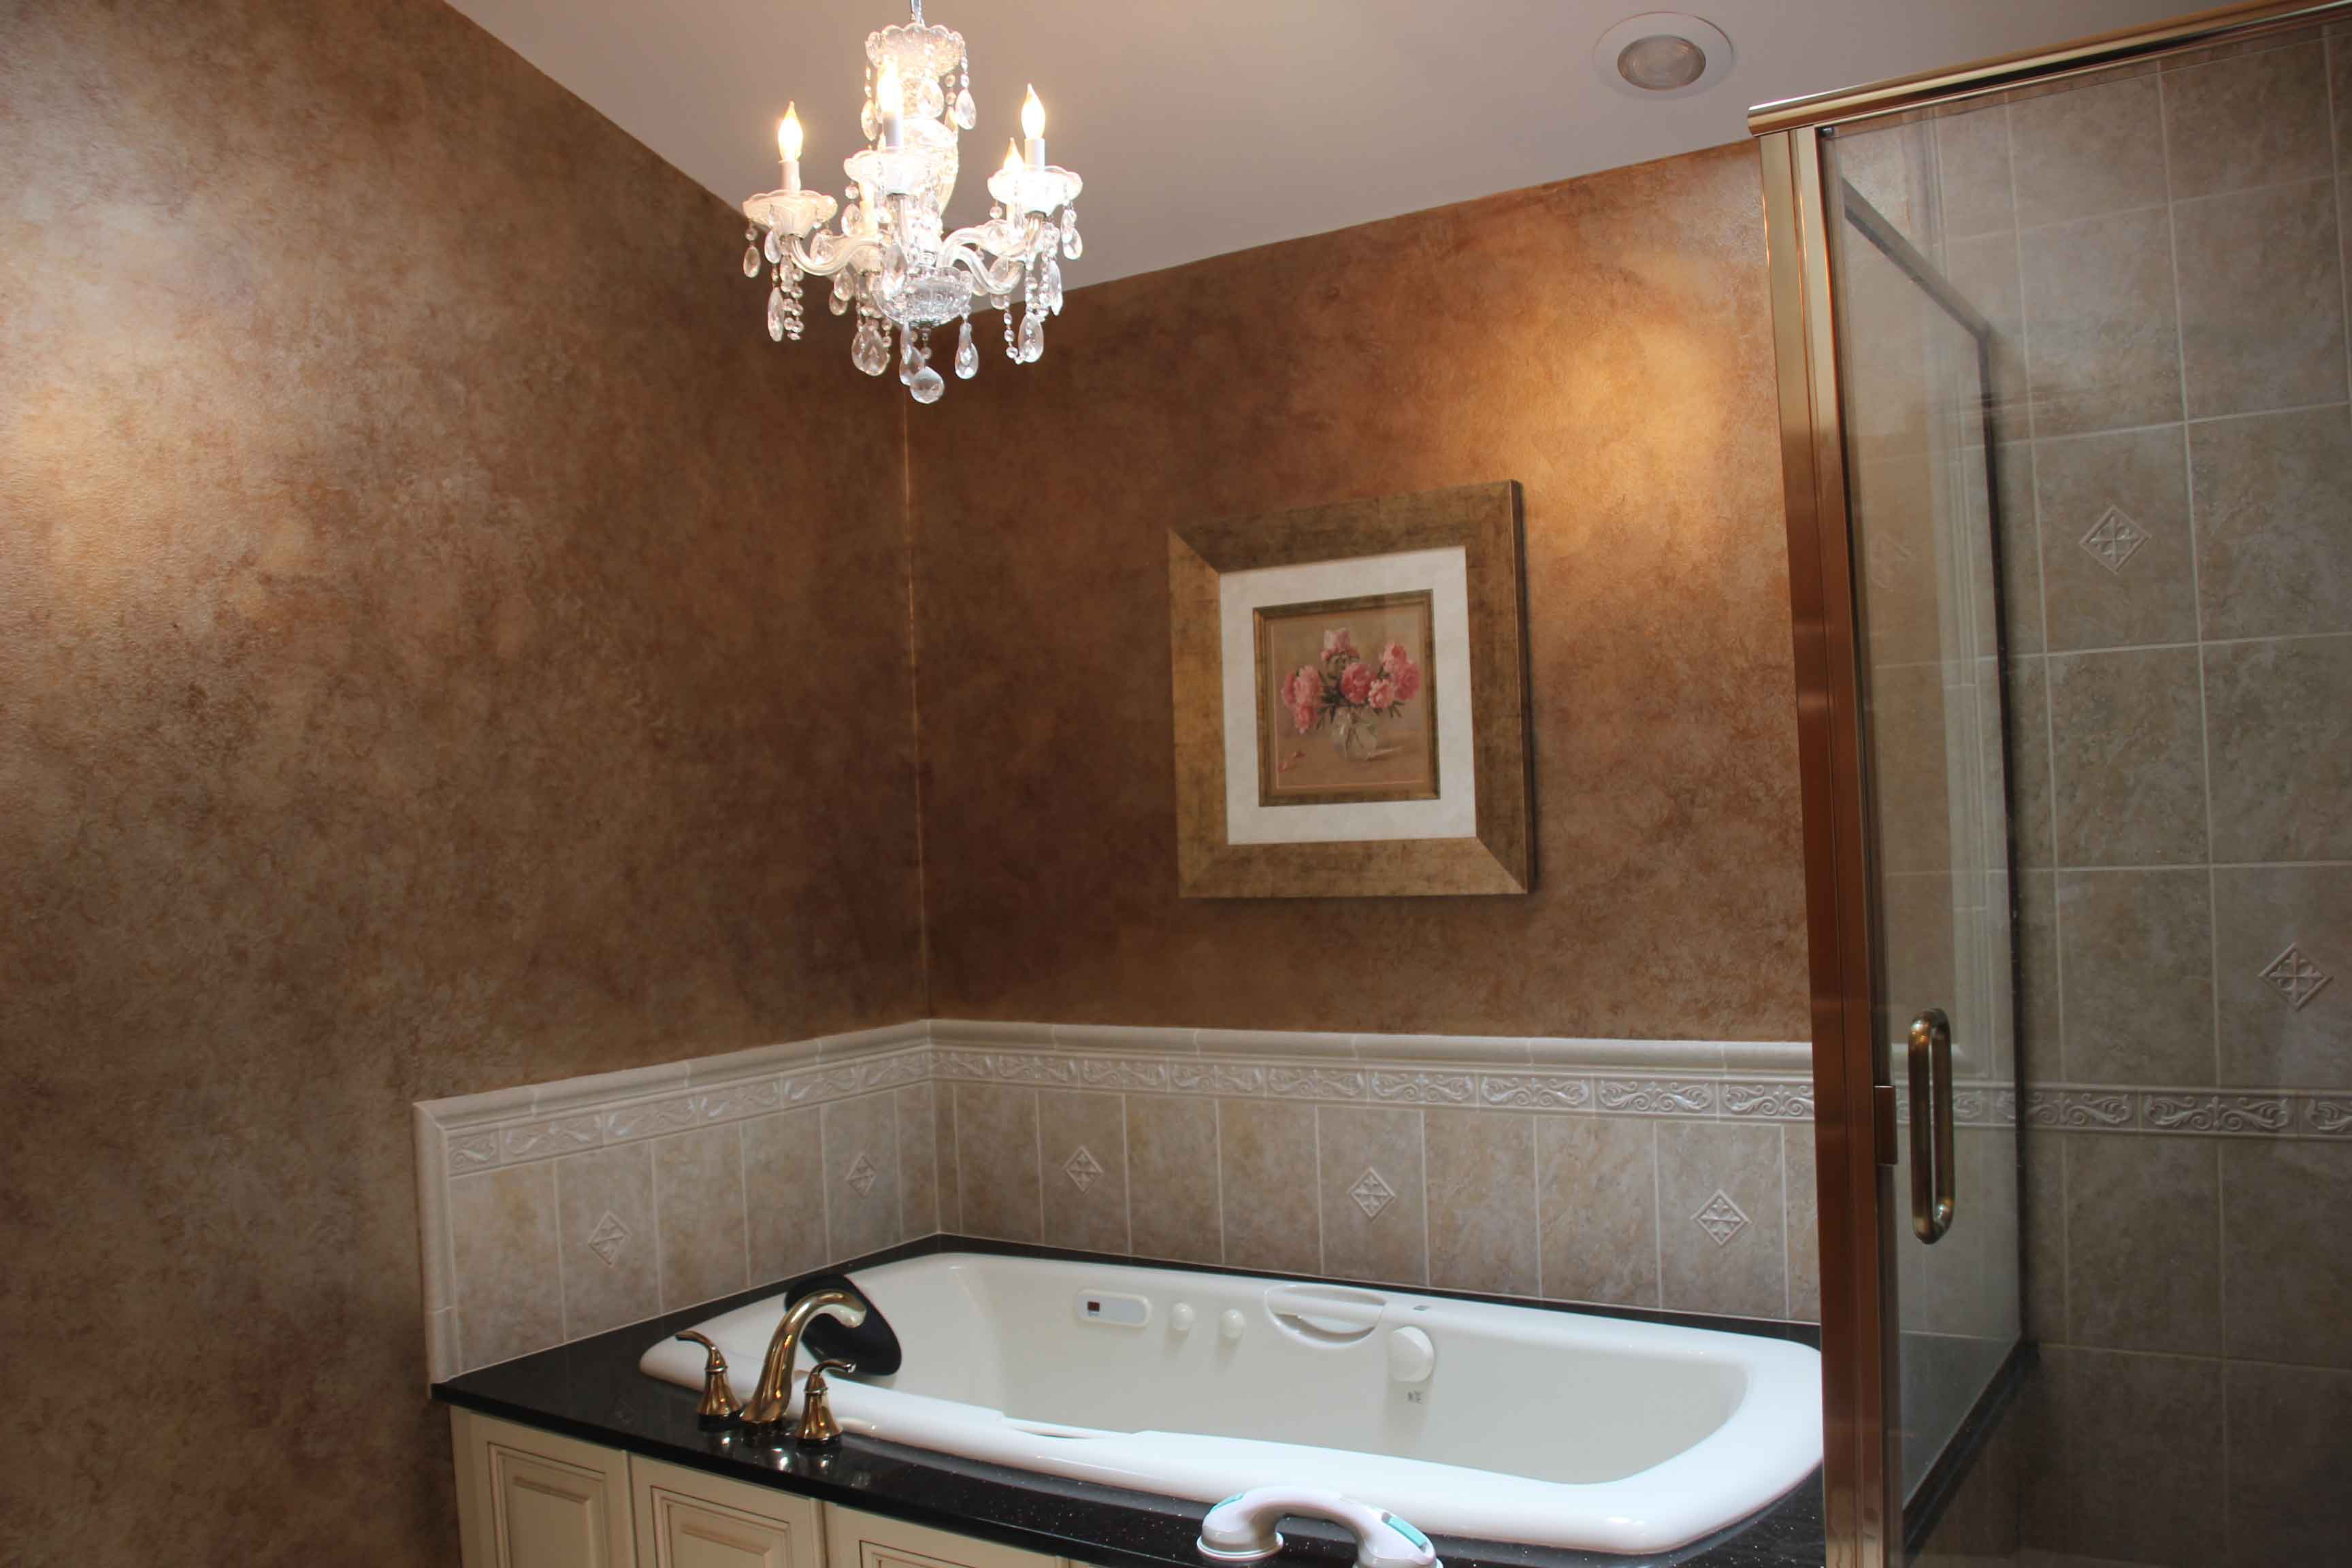 Faux painting bathroom - Full View